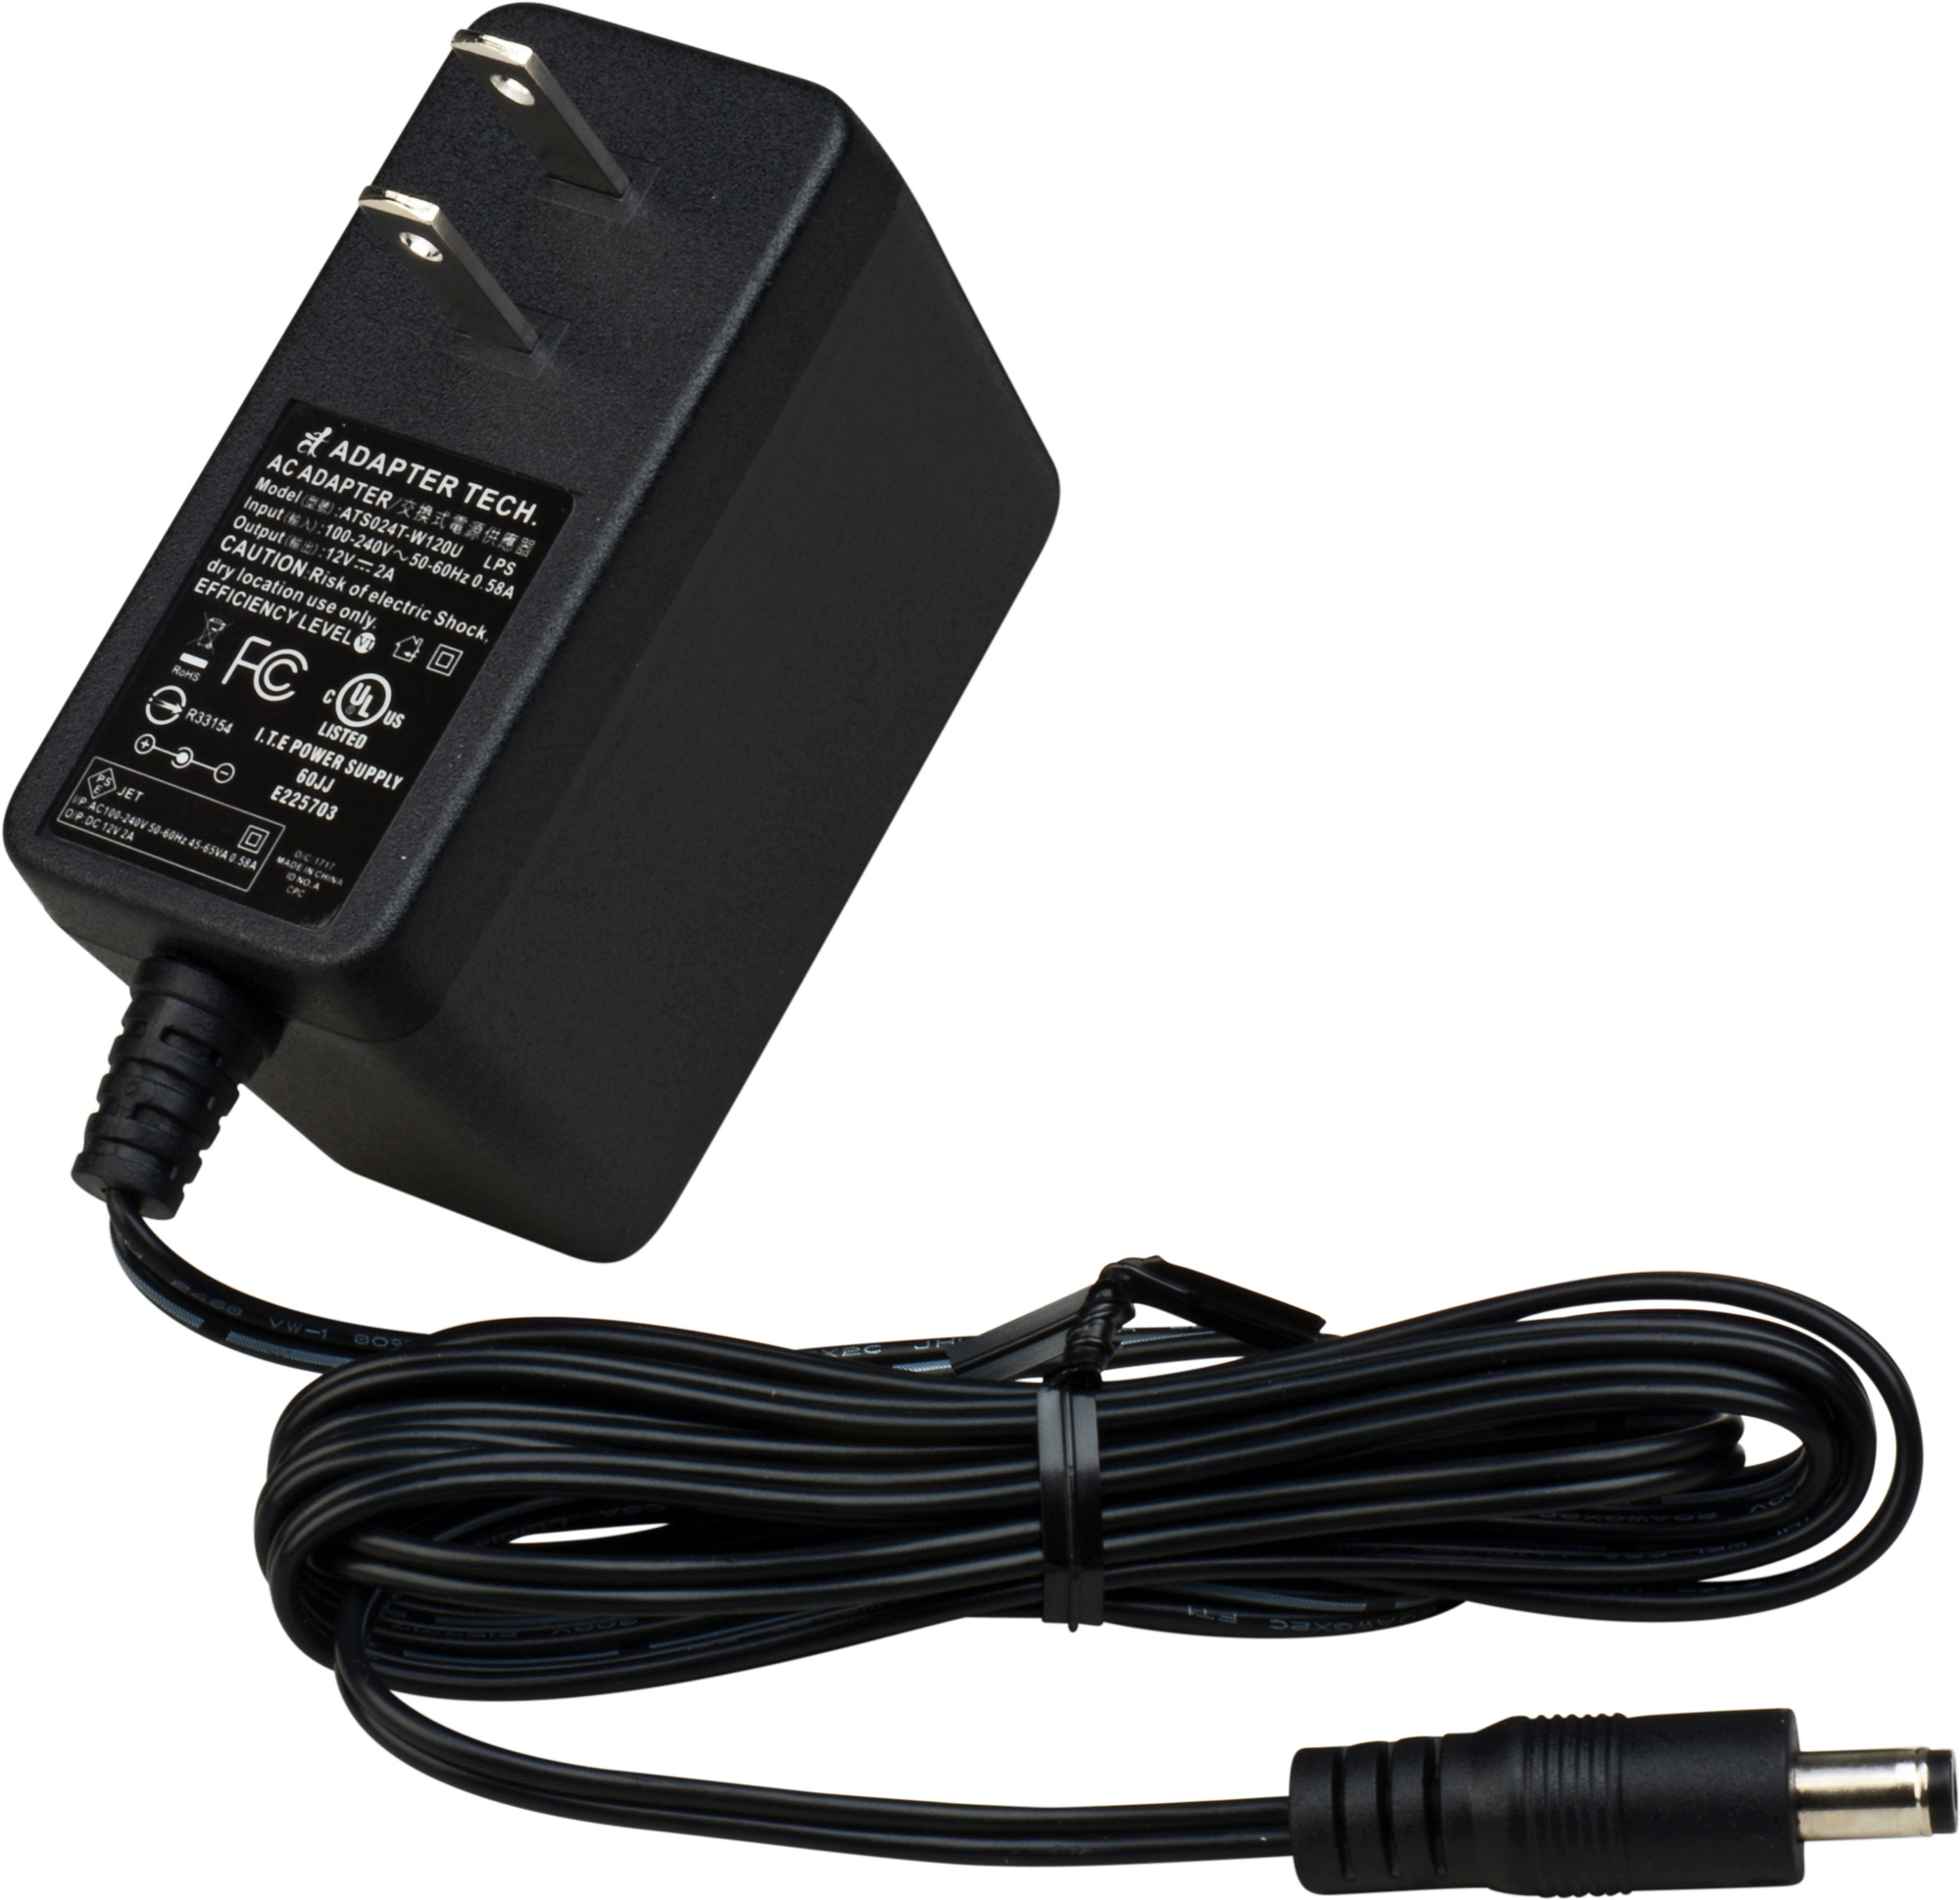 connectronics 12 volt 2 0 amp ac dc power adapter with plug. Black Bedroom Furniture Sets. Home Design Ideas